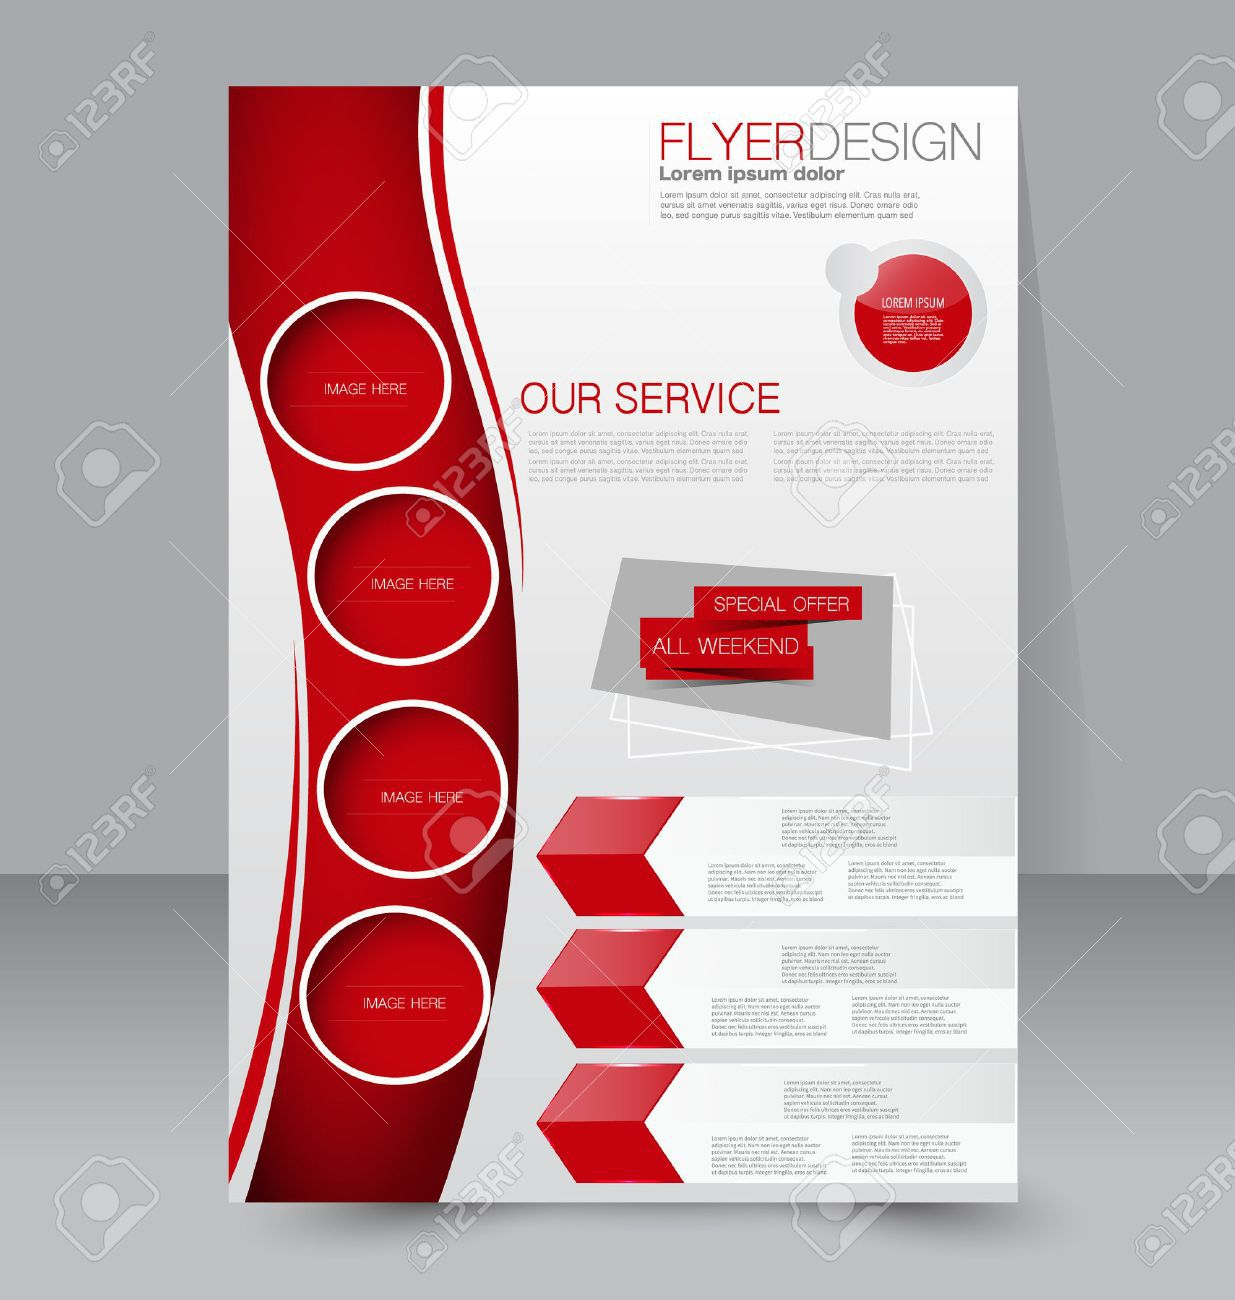 003 Magnificent Free Editable Flyer Template Image  Busines FundraisingFull